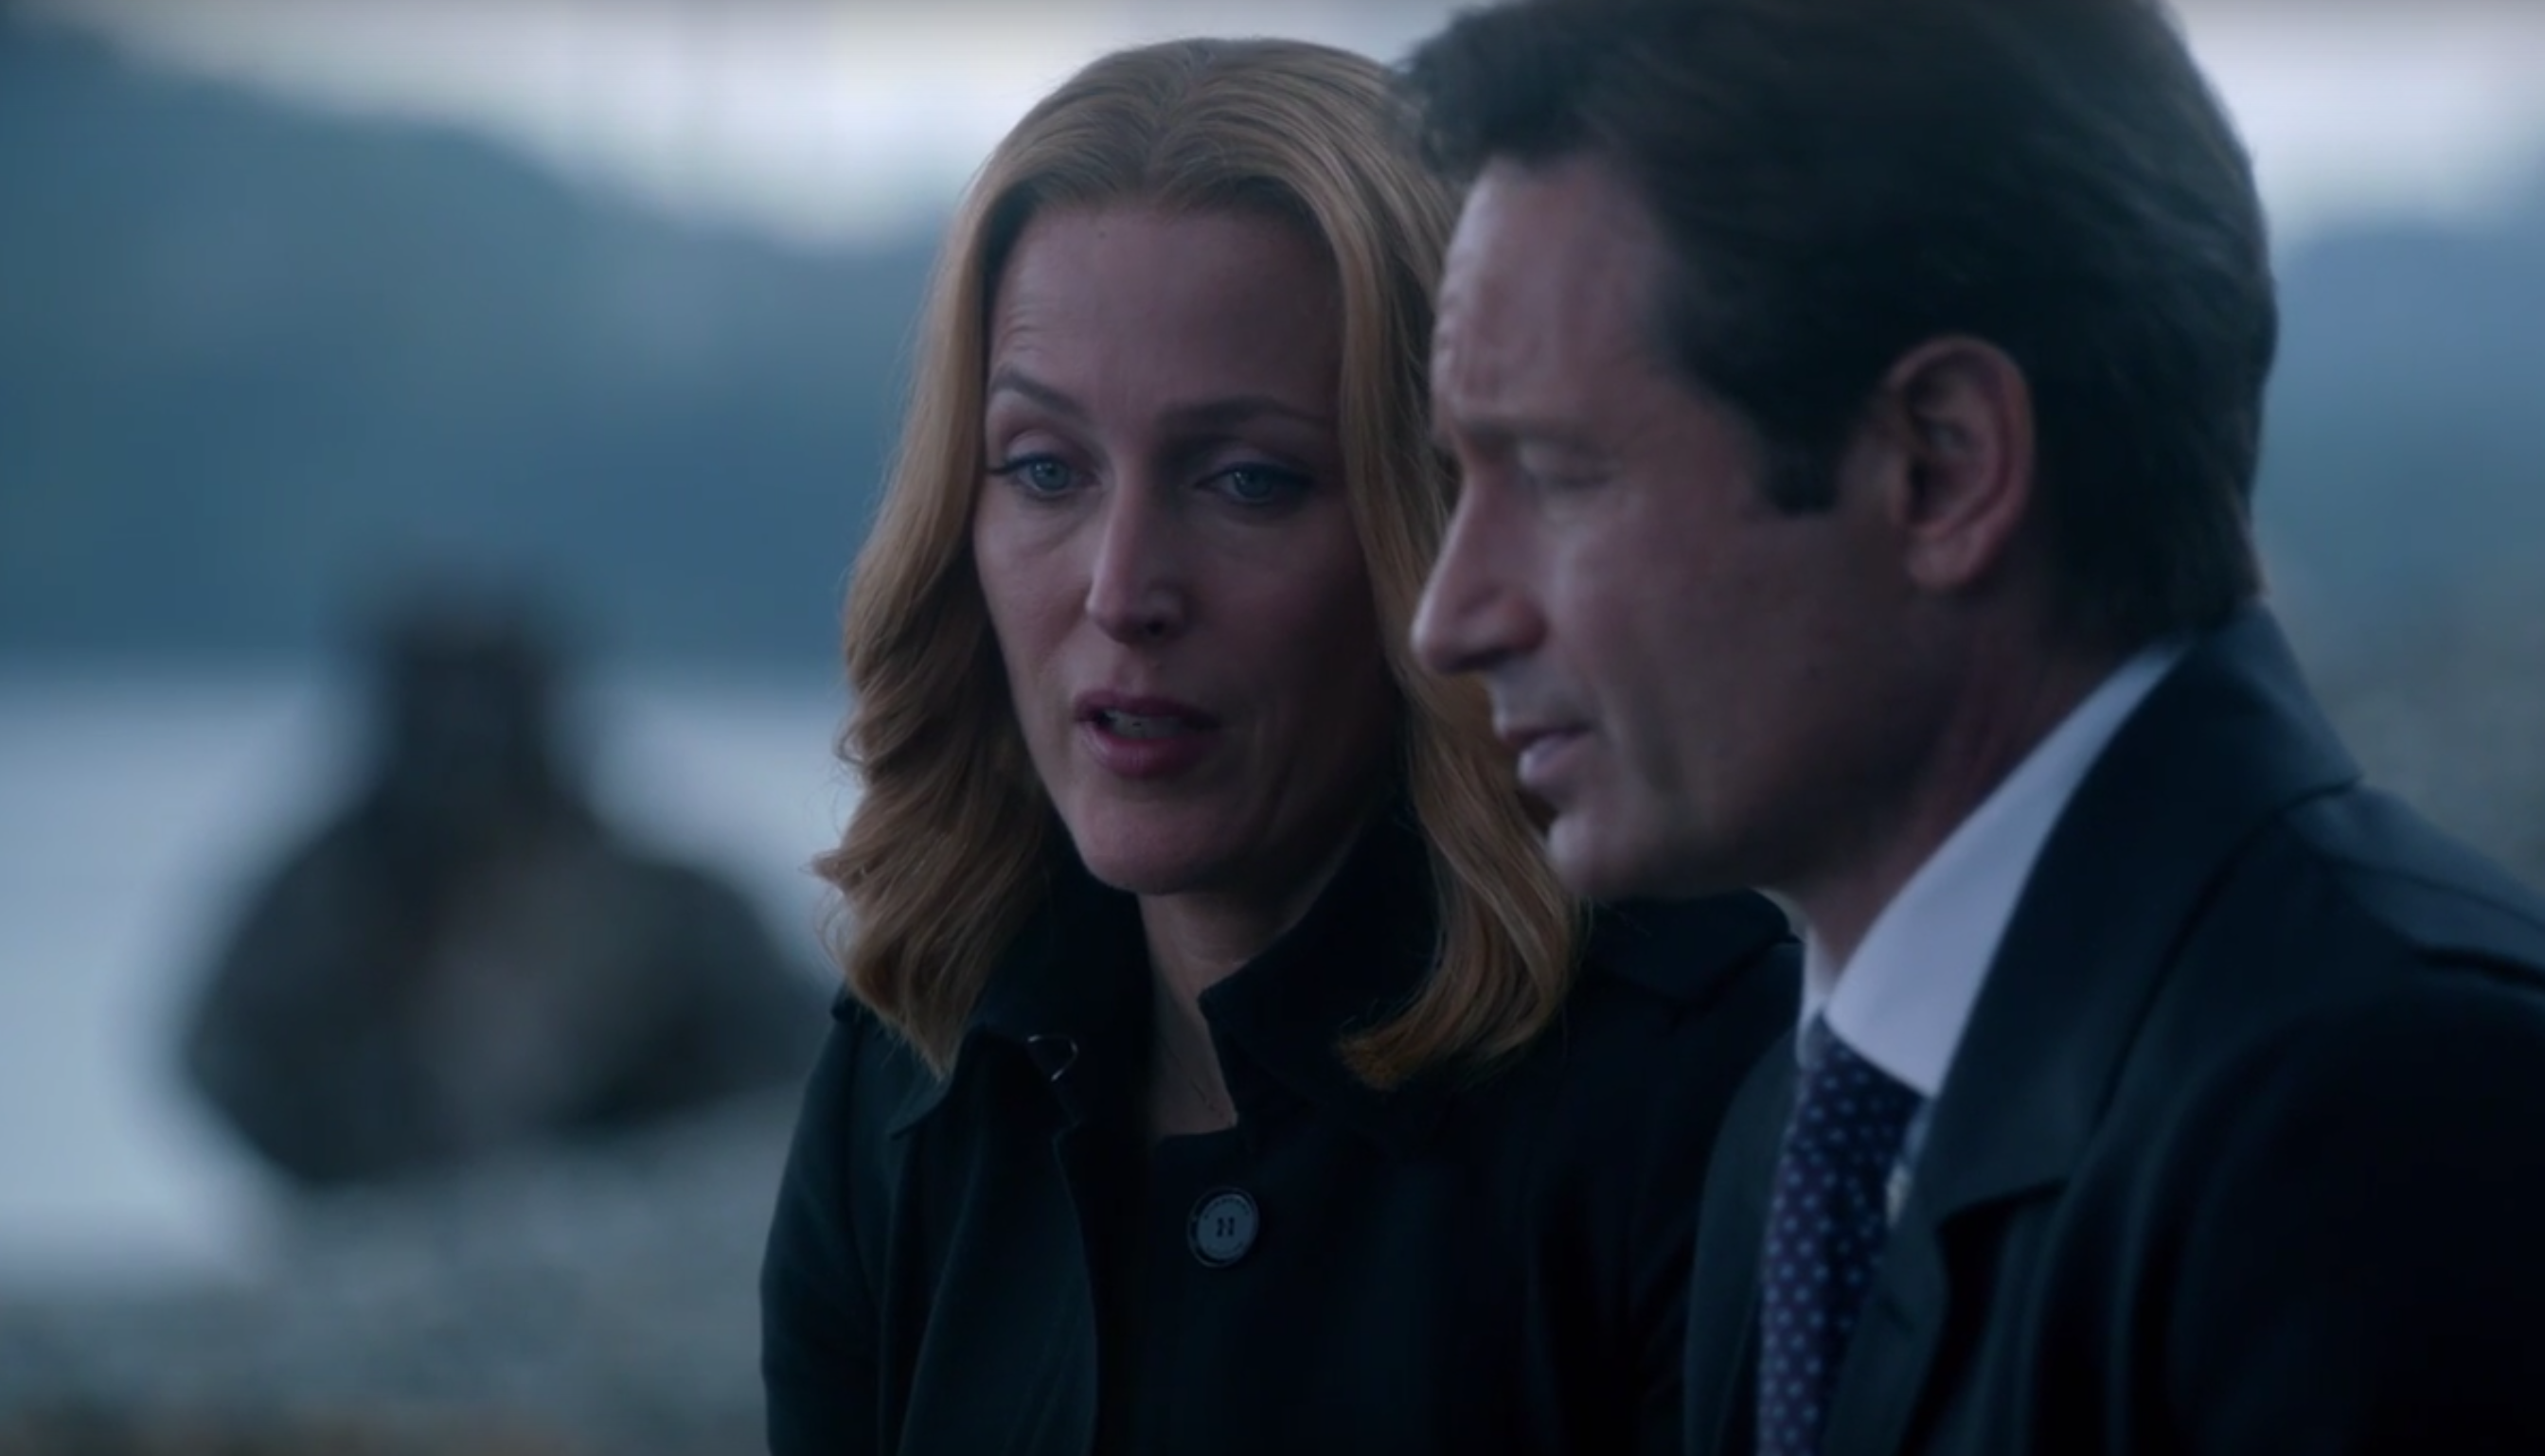 Mulder and Scully return in the X-Files